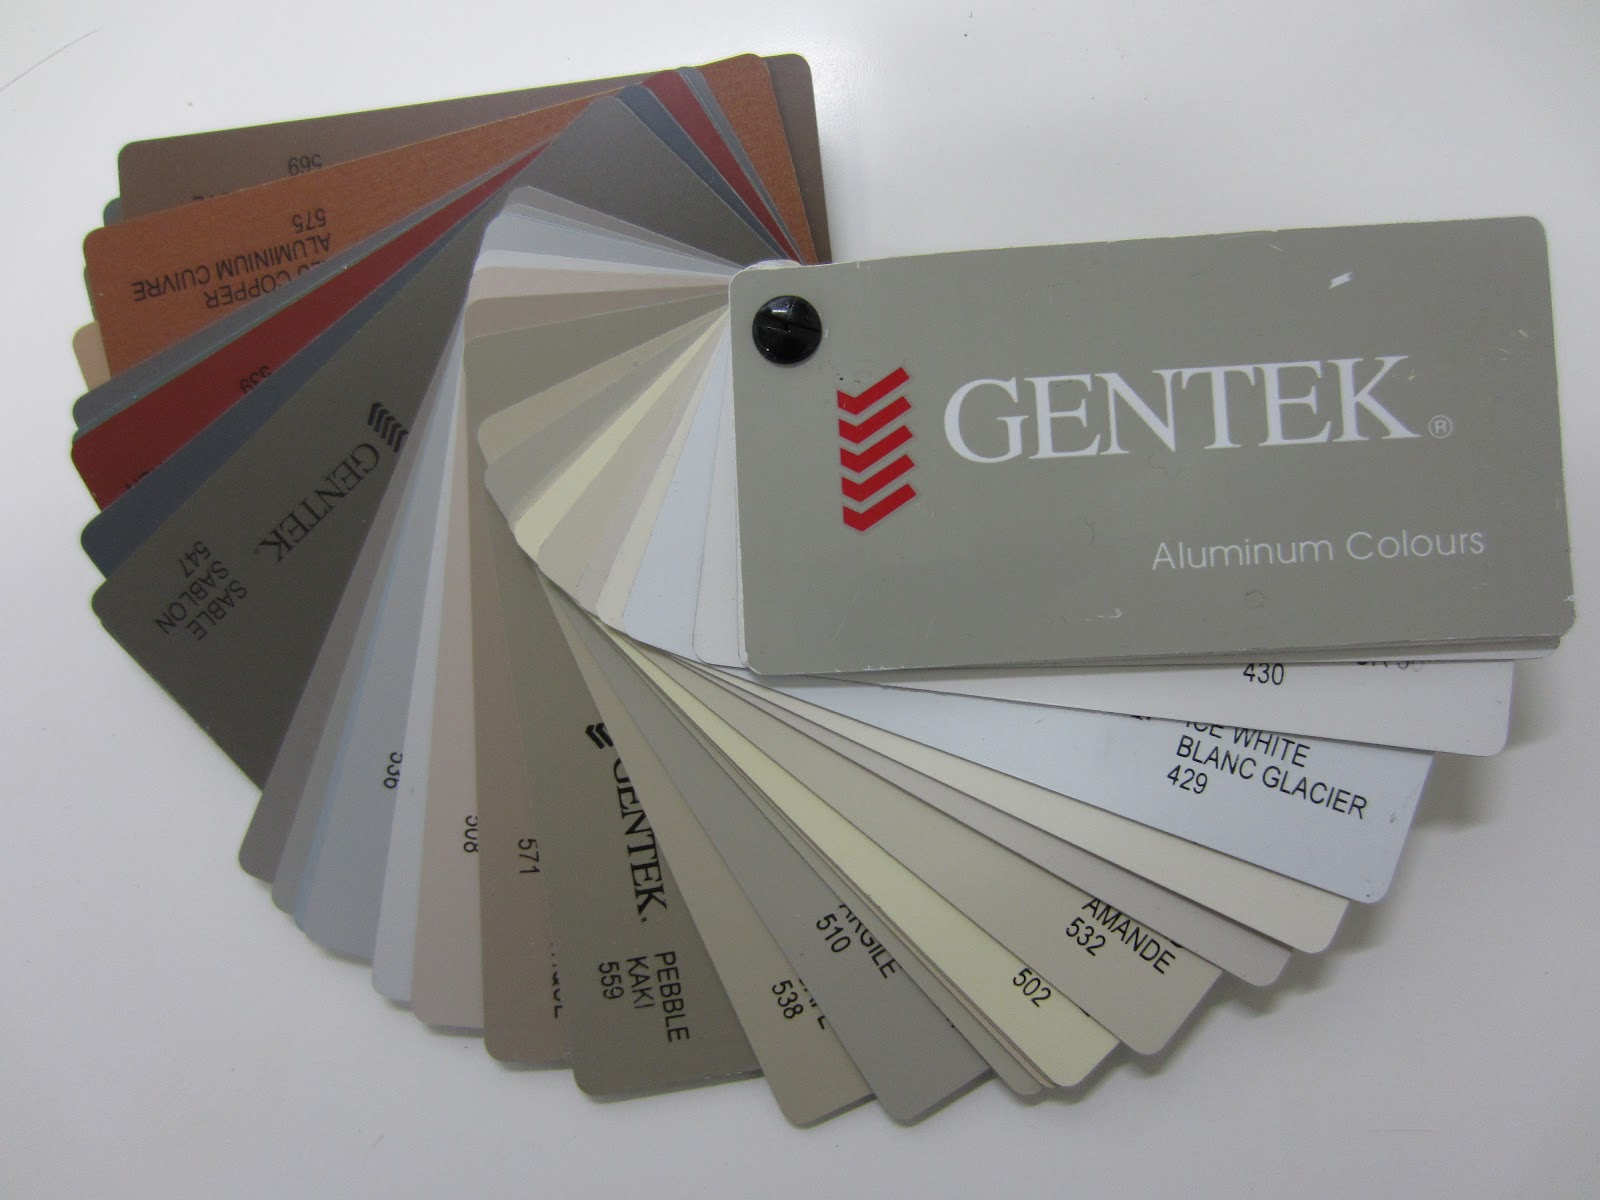 Toronto eavestroughing eavestrough colour selection for Fenetre gentek